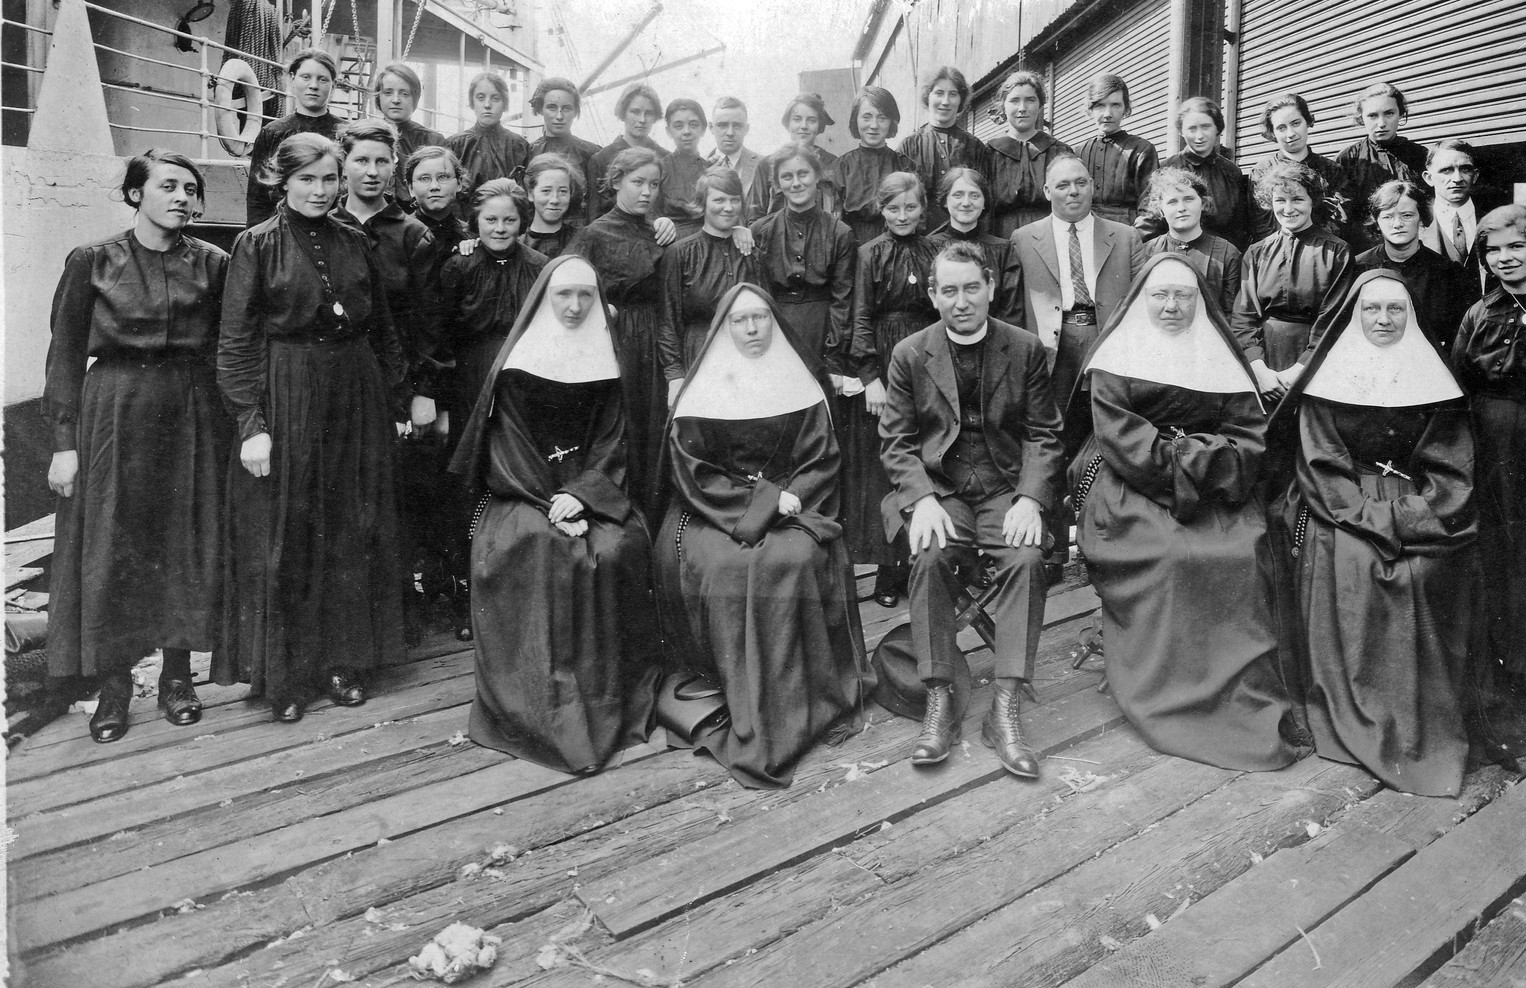 Women came to community to serve and responded willingly to the need. Leaving home and family was only one of the many hardships endured for love. These Irish Sisters and postulants sailed from Liverpool on the S.S. Antillian in October 1922.